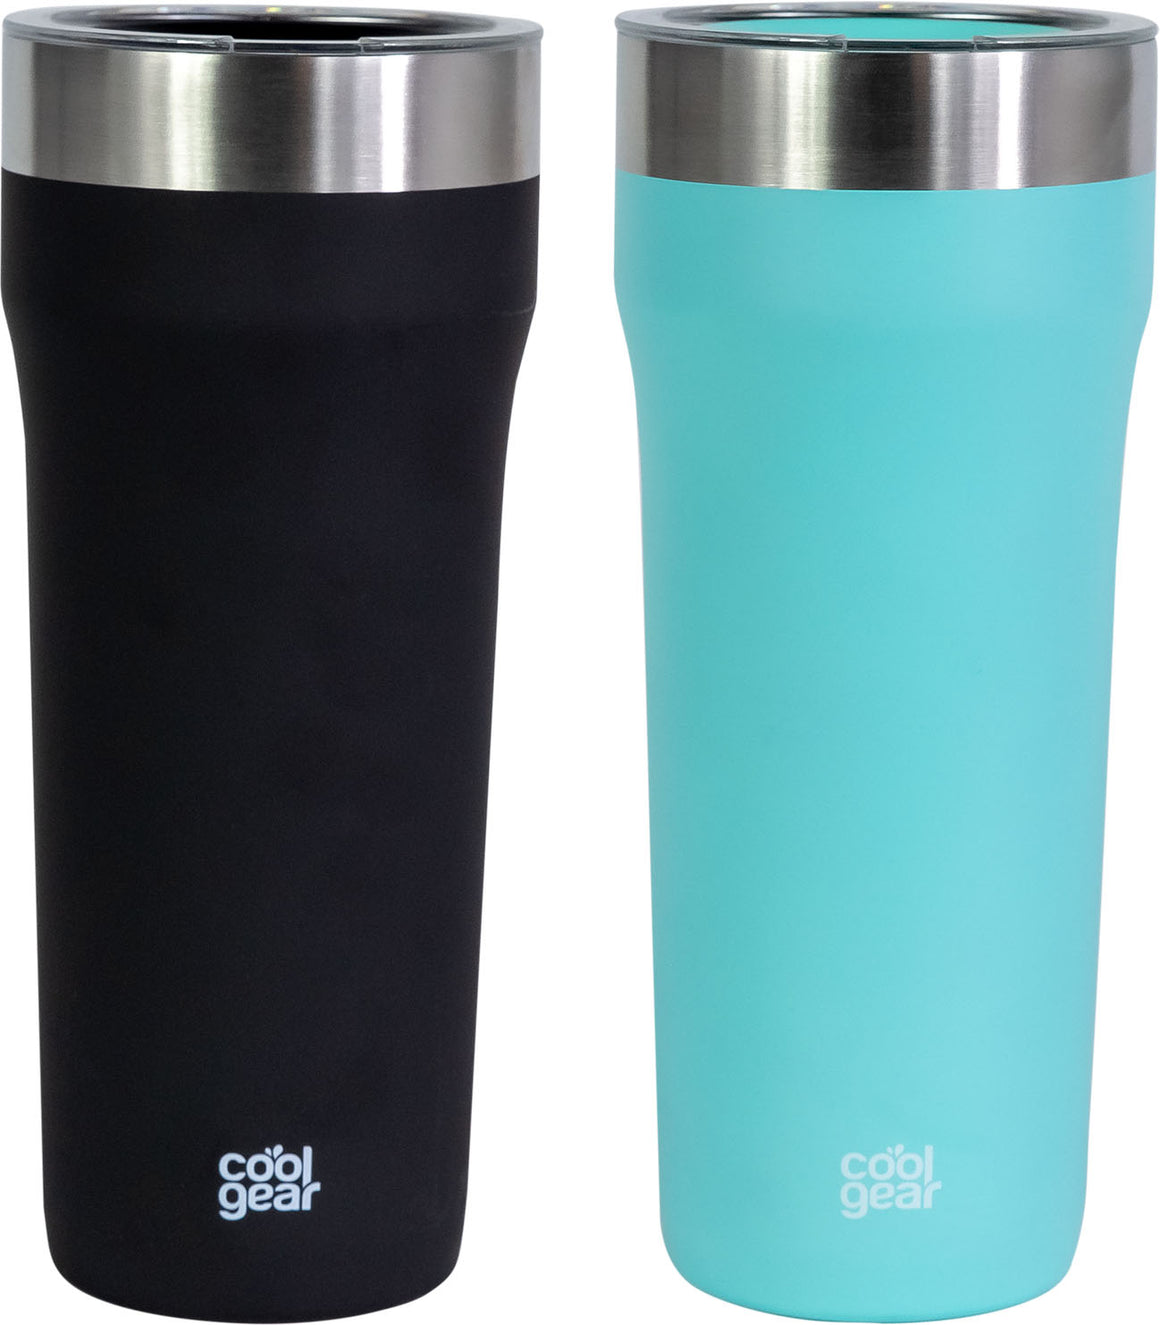 COOL GEAR Eclipse 30oz Stainless Steel Tumbler | Slide & Sip Lid